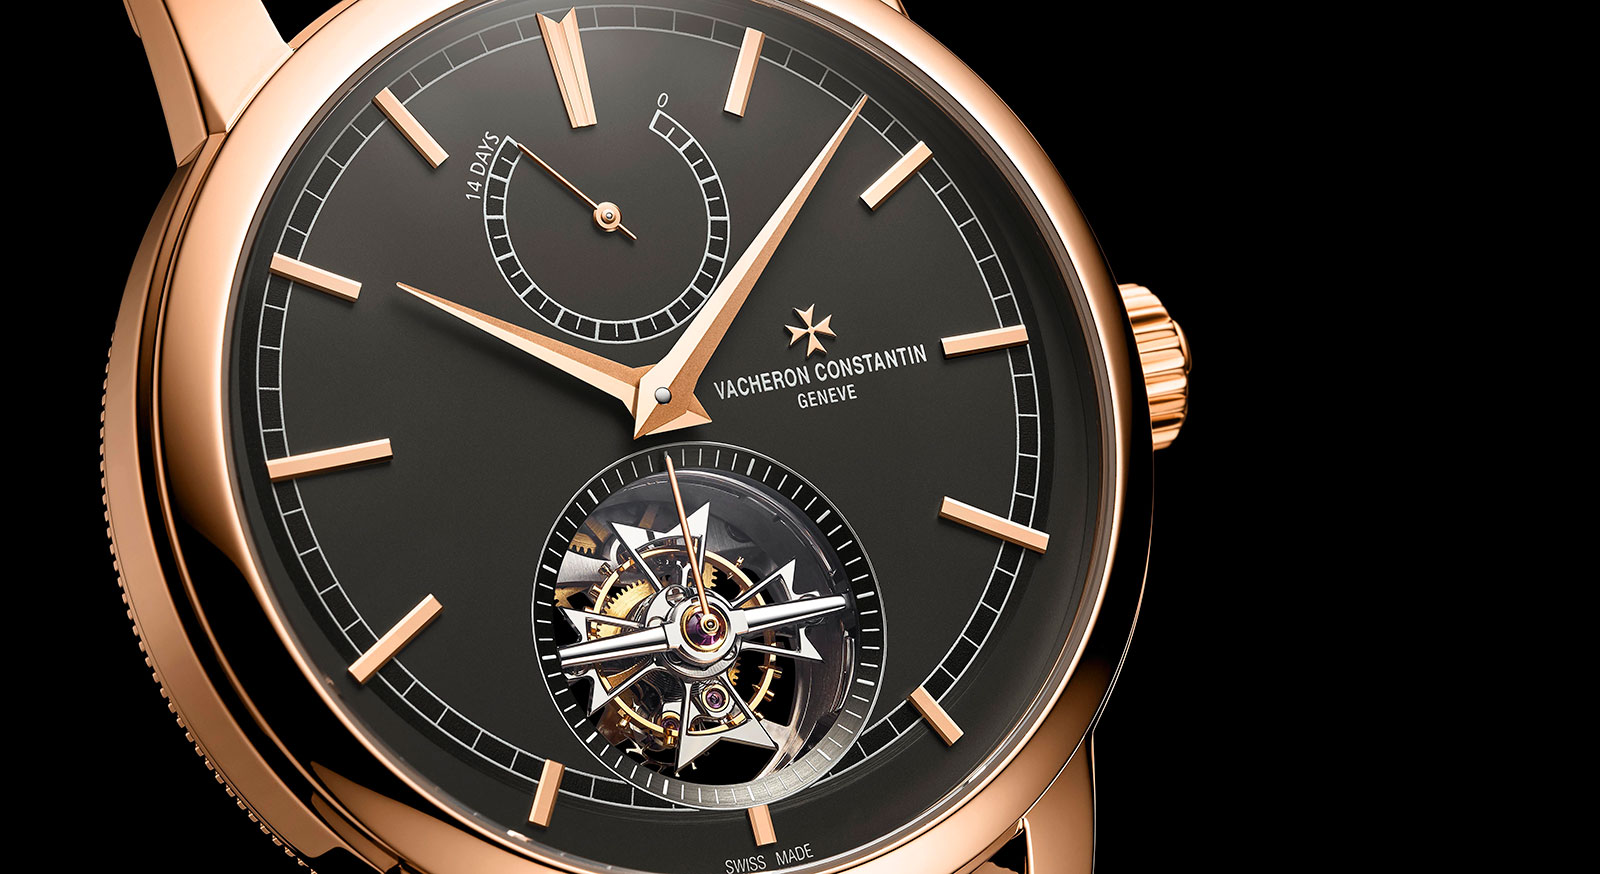 Vacheron Constantin Introduces the Traditionnelle ...